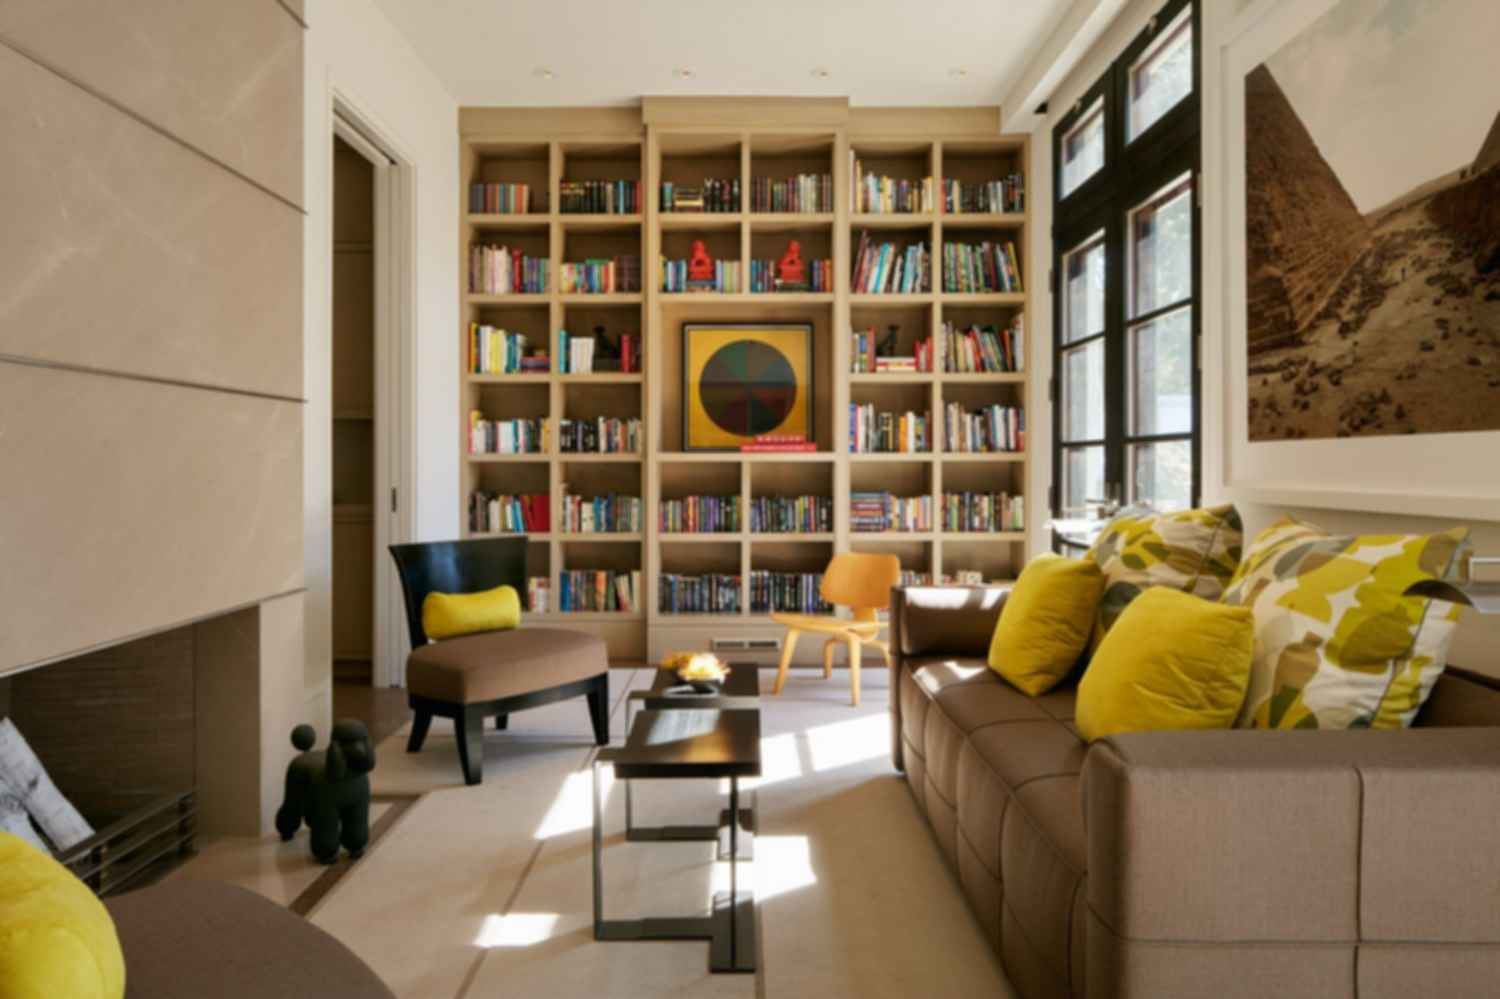 Northern California Residence - Living Room